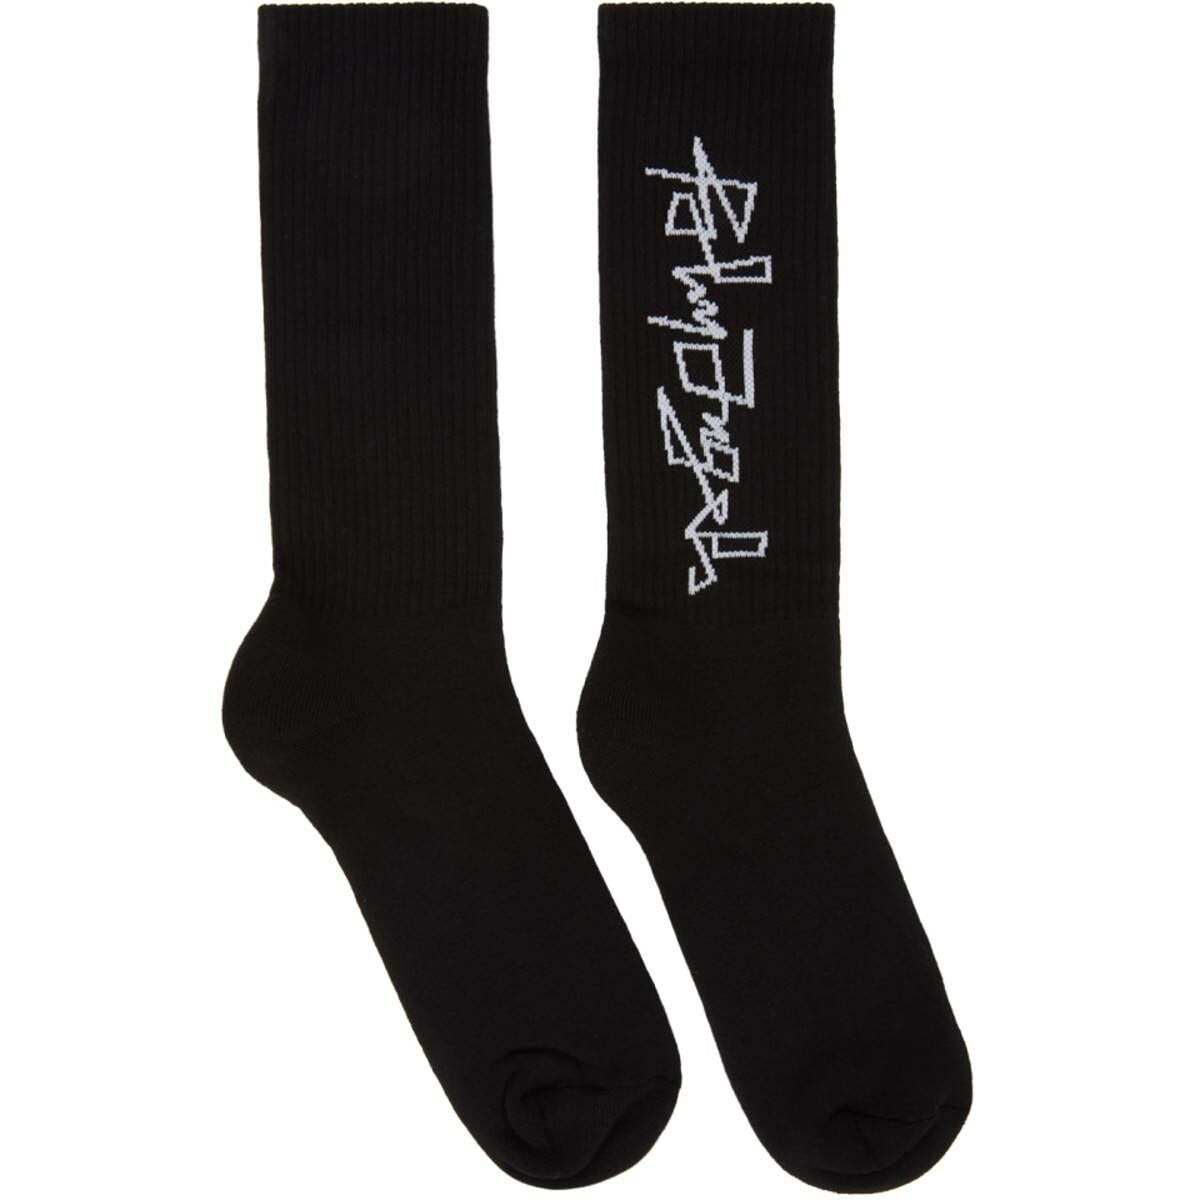 Palm Angels Black Desert Logo Socks Ssense USA MEN Men ACCESSORIES Mens SOCKS